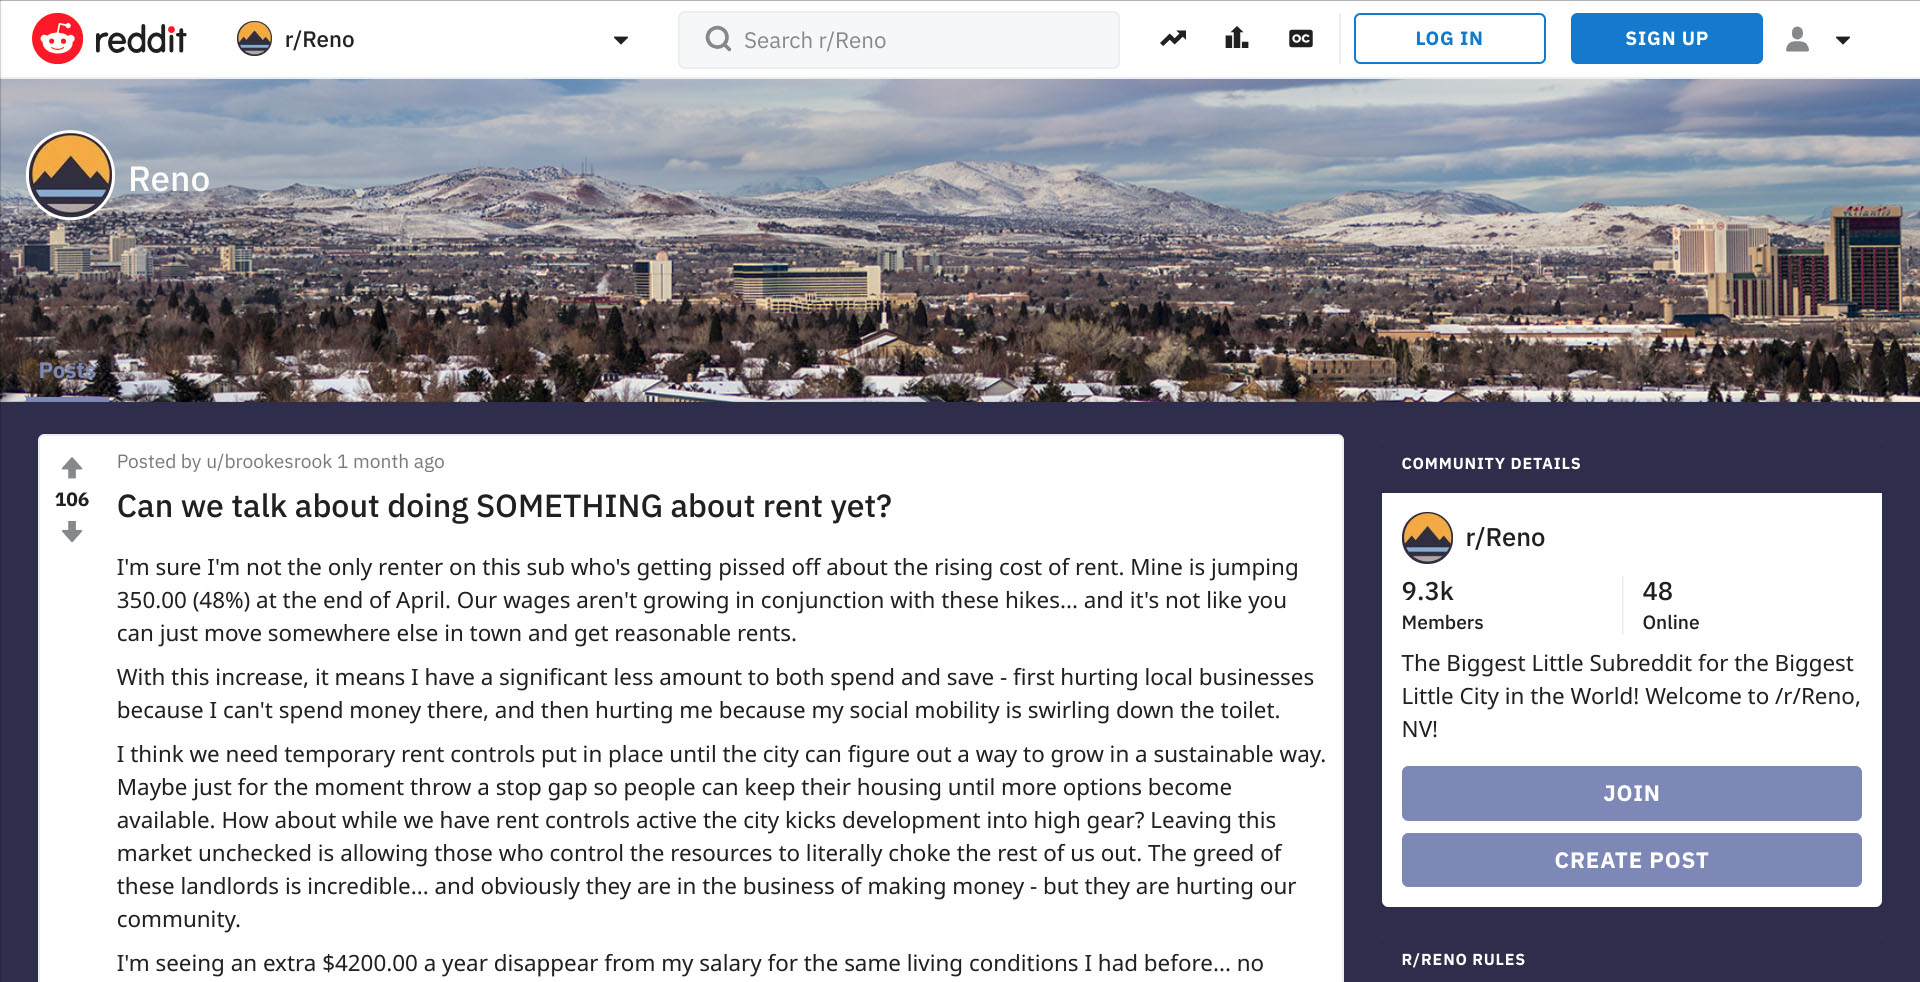 Noble has had debates with realtors, landlords and other renters in Reno on the subreddit r/Reno on Reddit. She said she likes to discuss and understand opposing arguments.